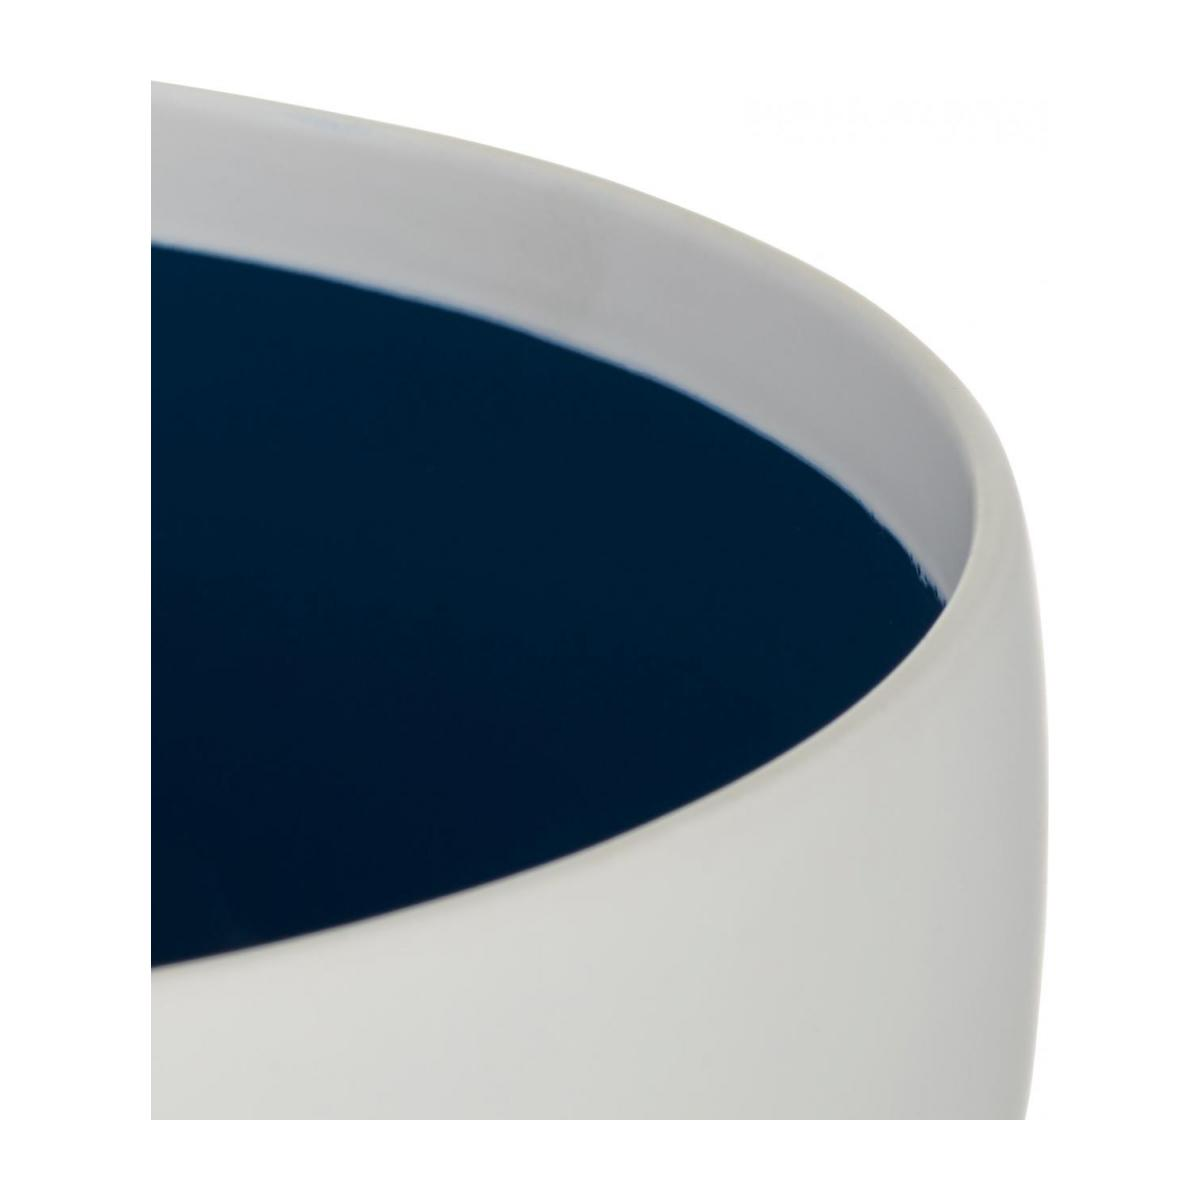 Stoneware Planter White with Blue Inside L n°3